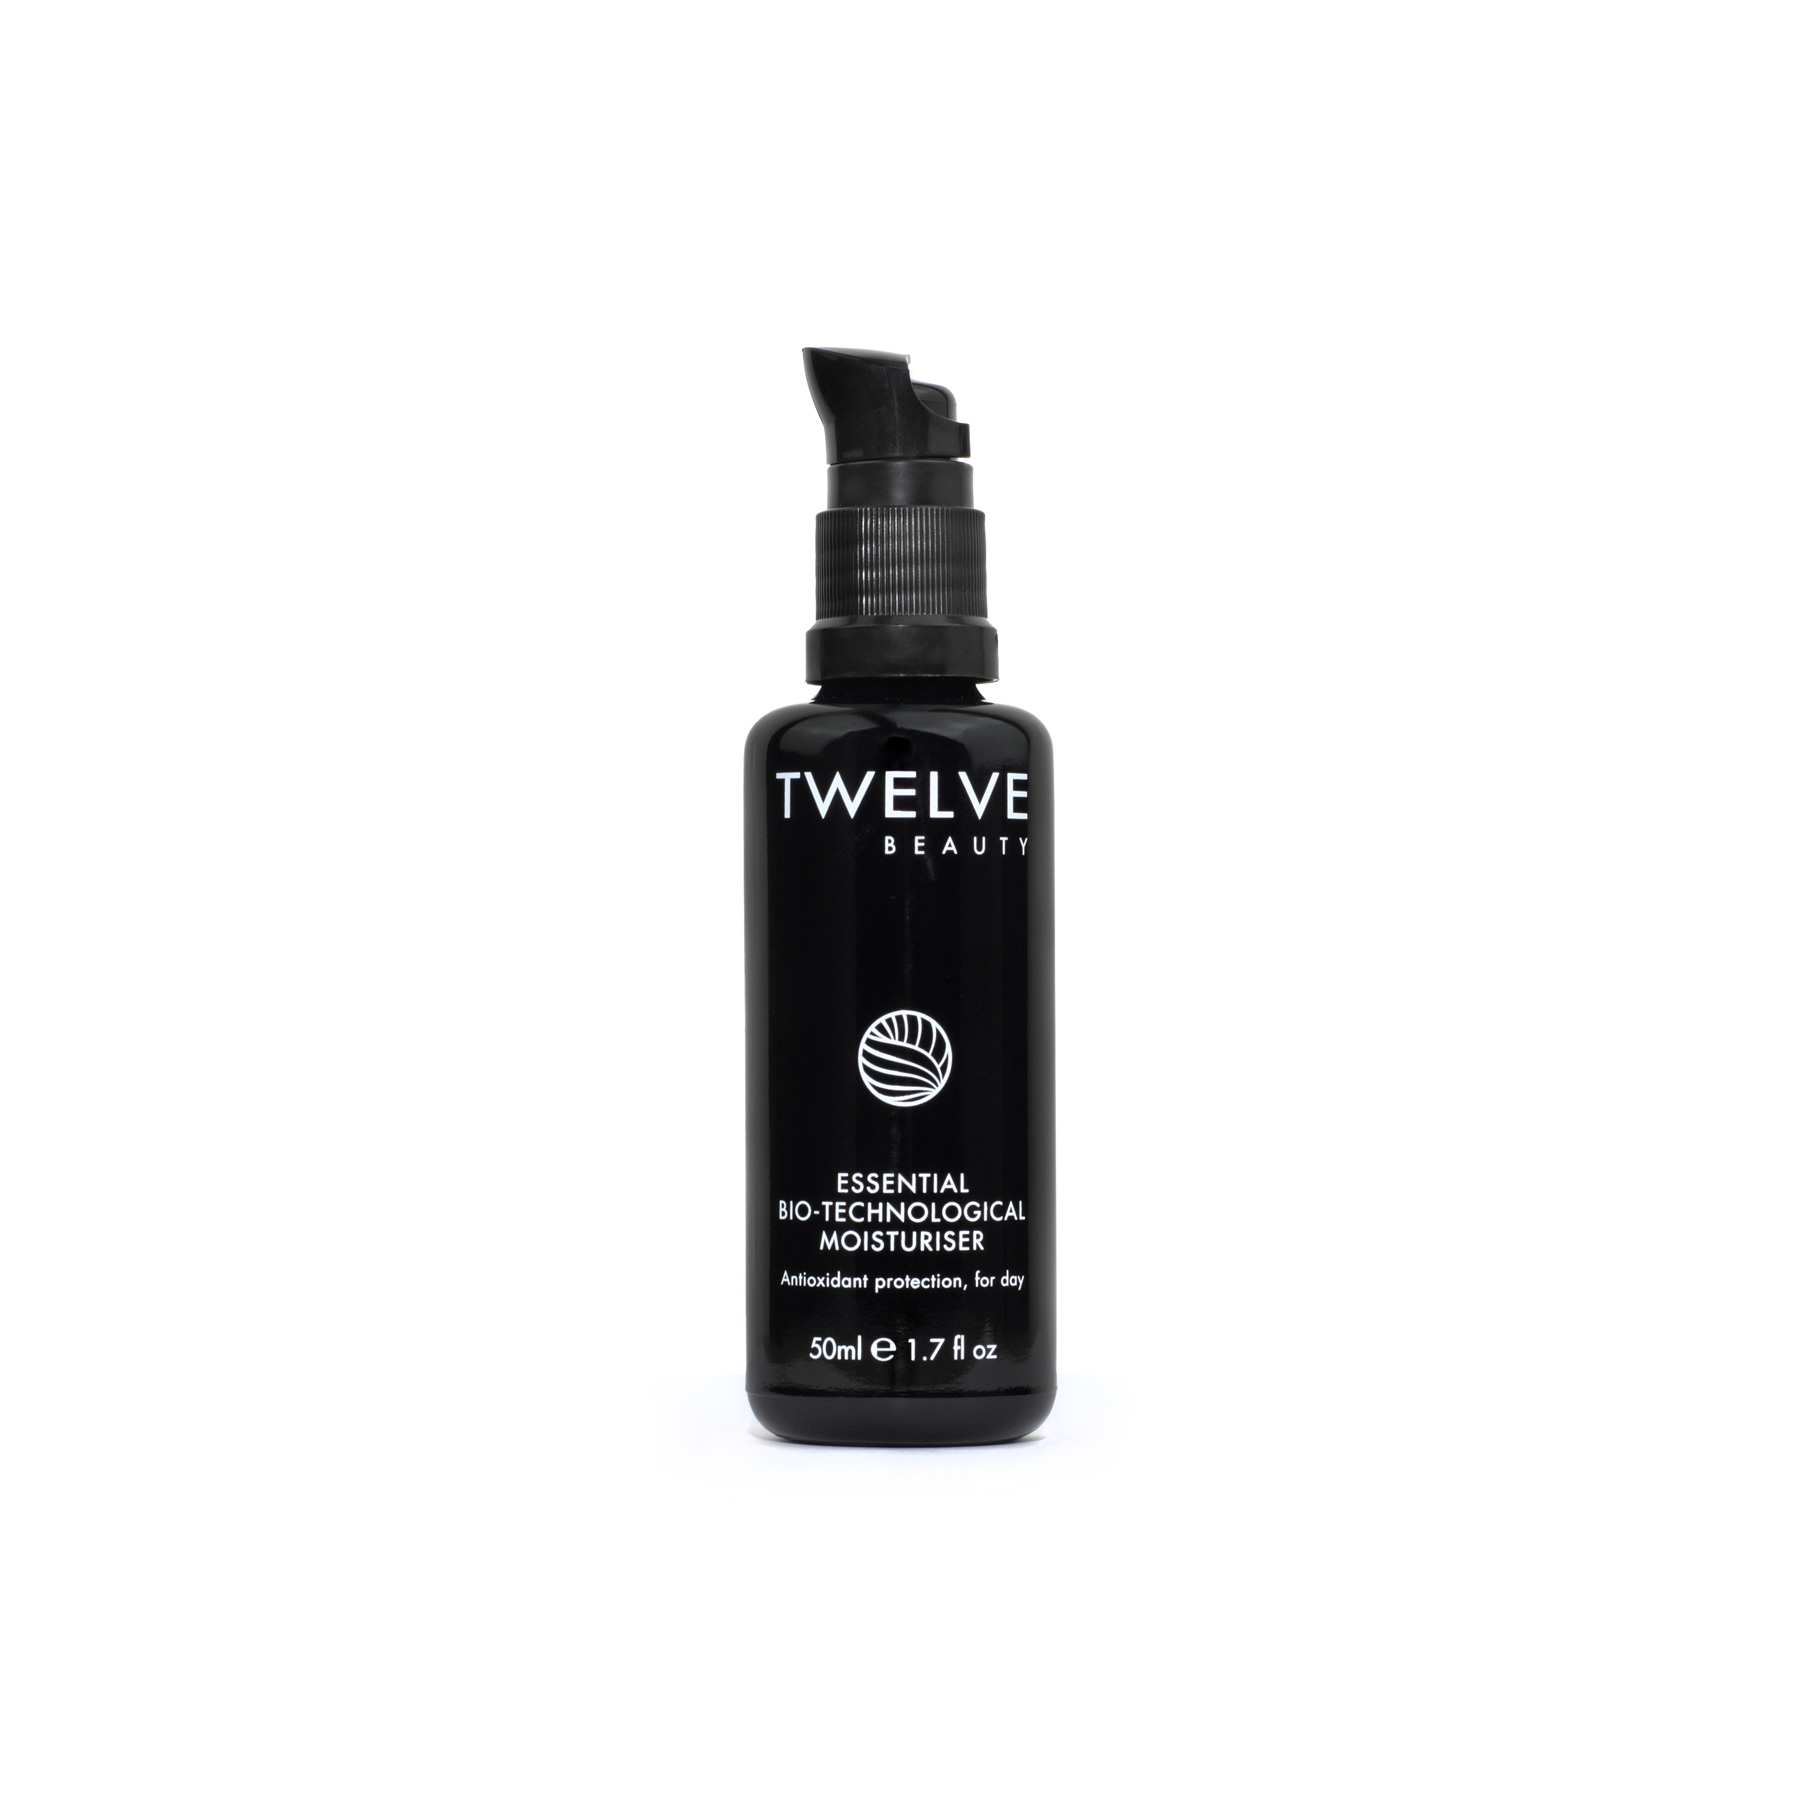 Essential Bio-Technological Moisturiser • $62   Silky cream  Works well for dry or combo skin. Potent moisturizer, wears well under makeup. Night cream version also.